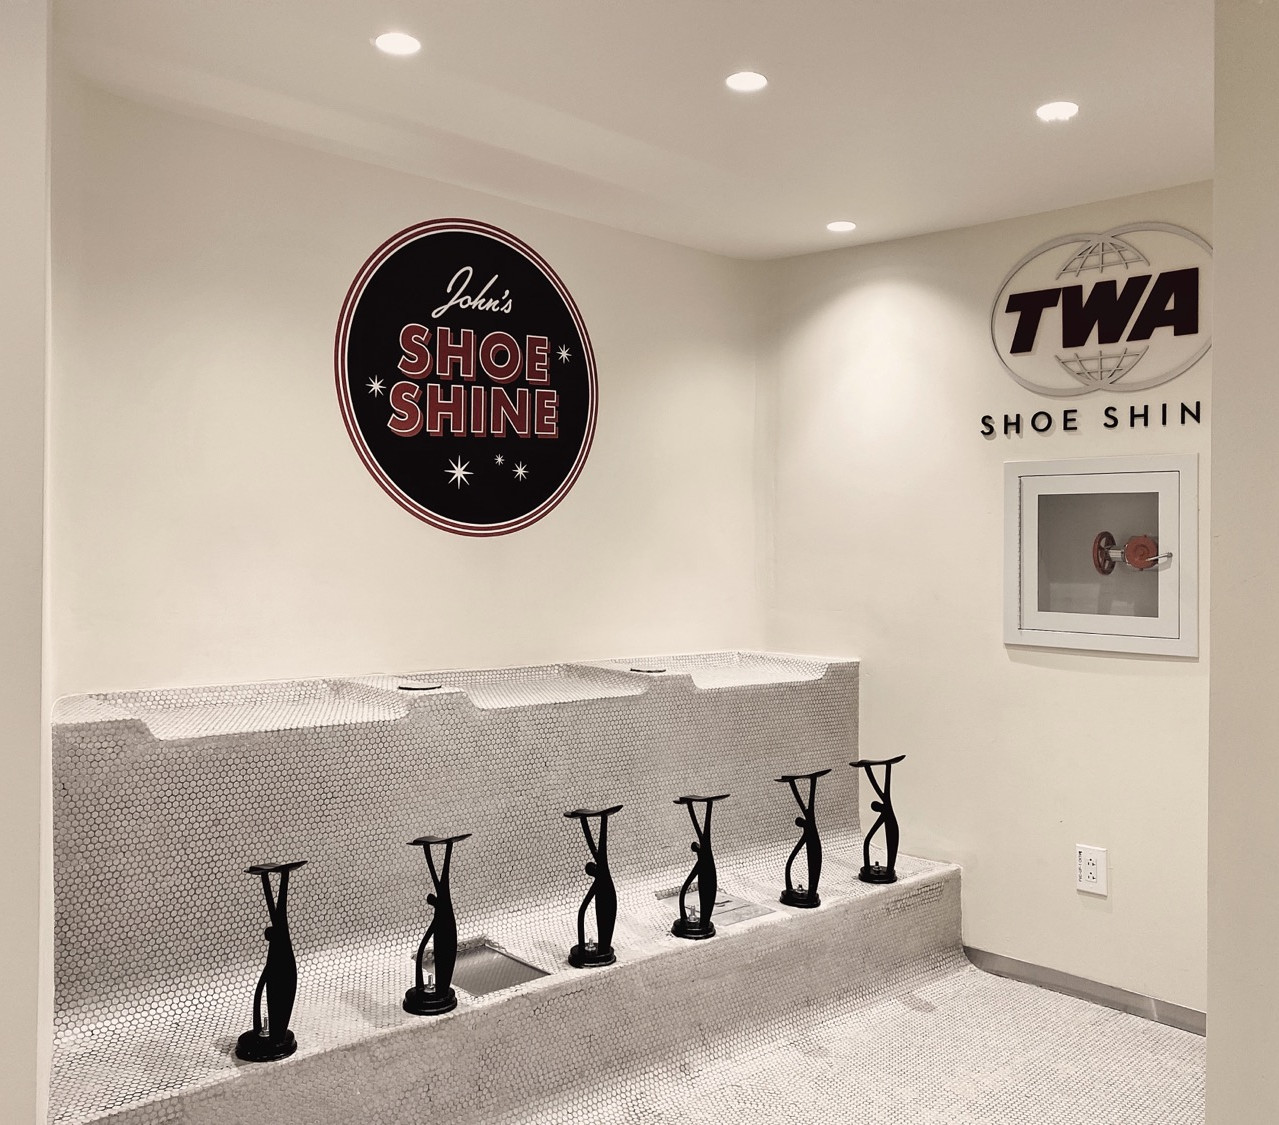 The TWA Hotel Review: The Stay